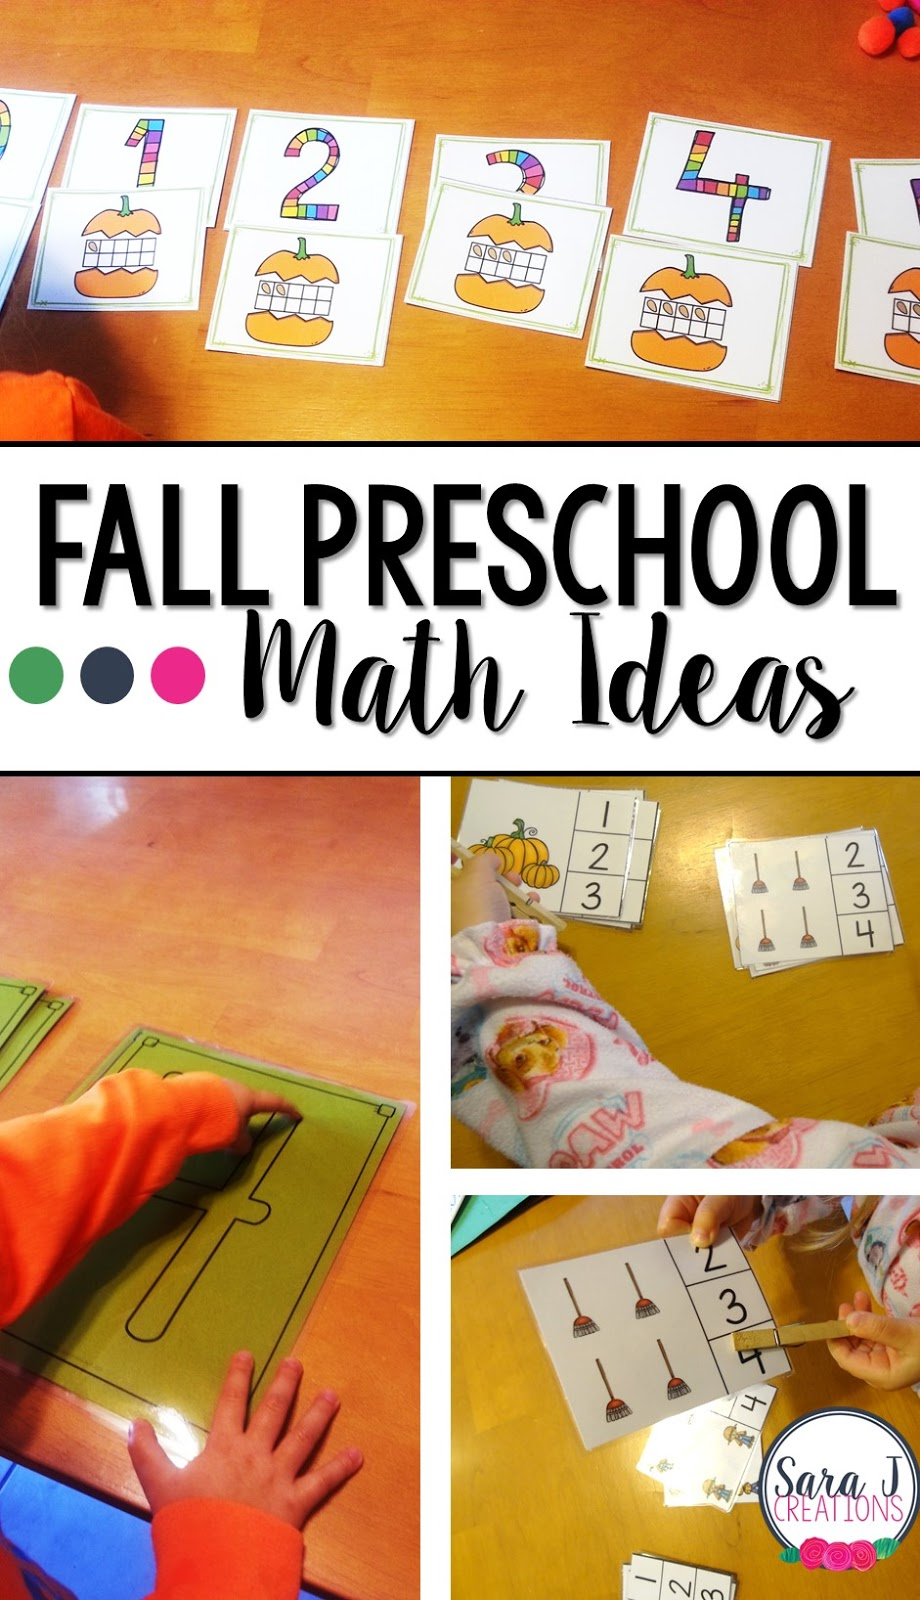 Ideas for fall preschool math practice for preschoolers that focuses on counting and numbers.